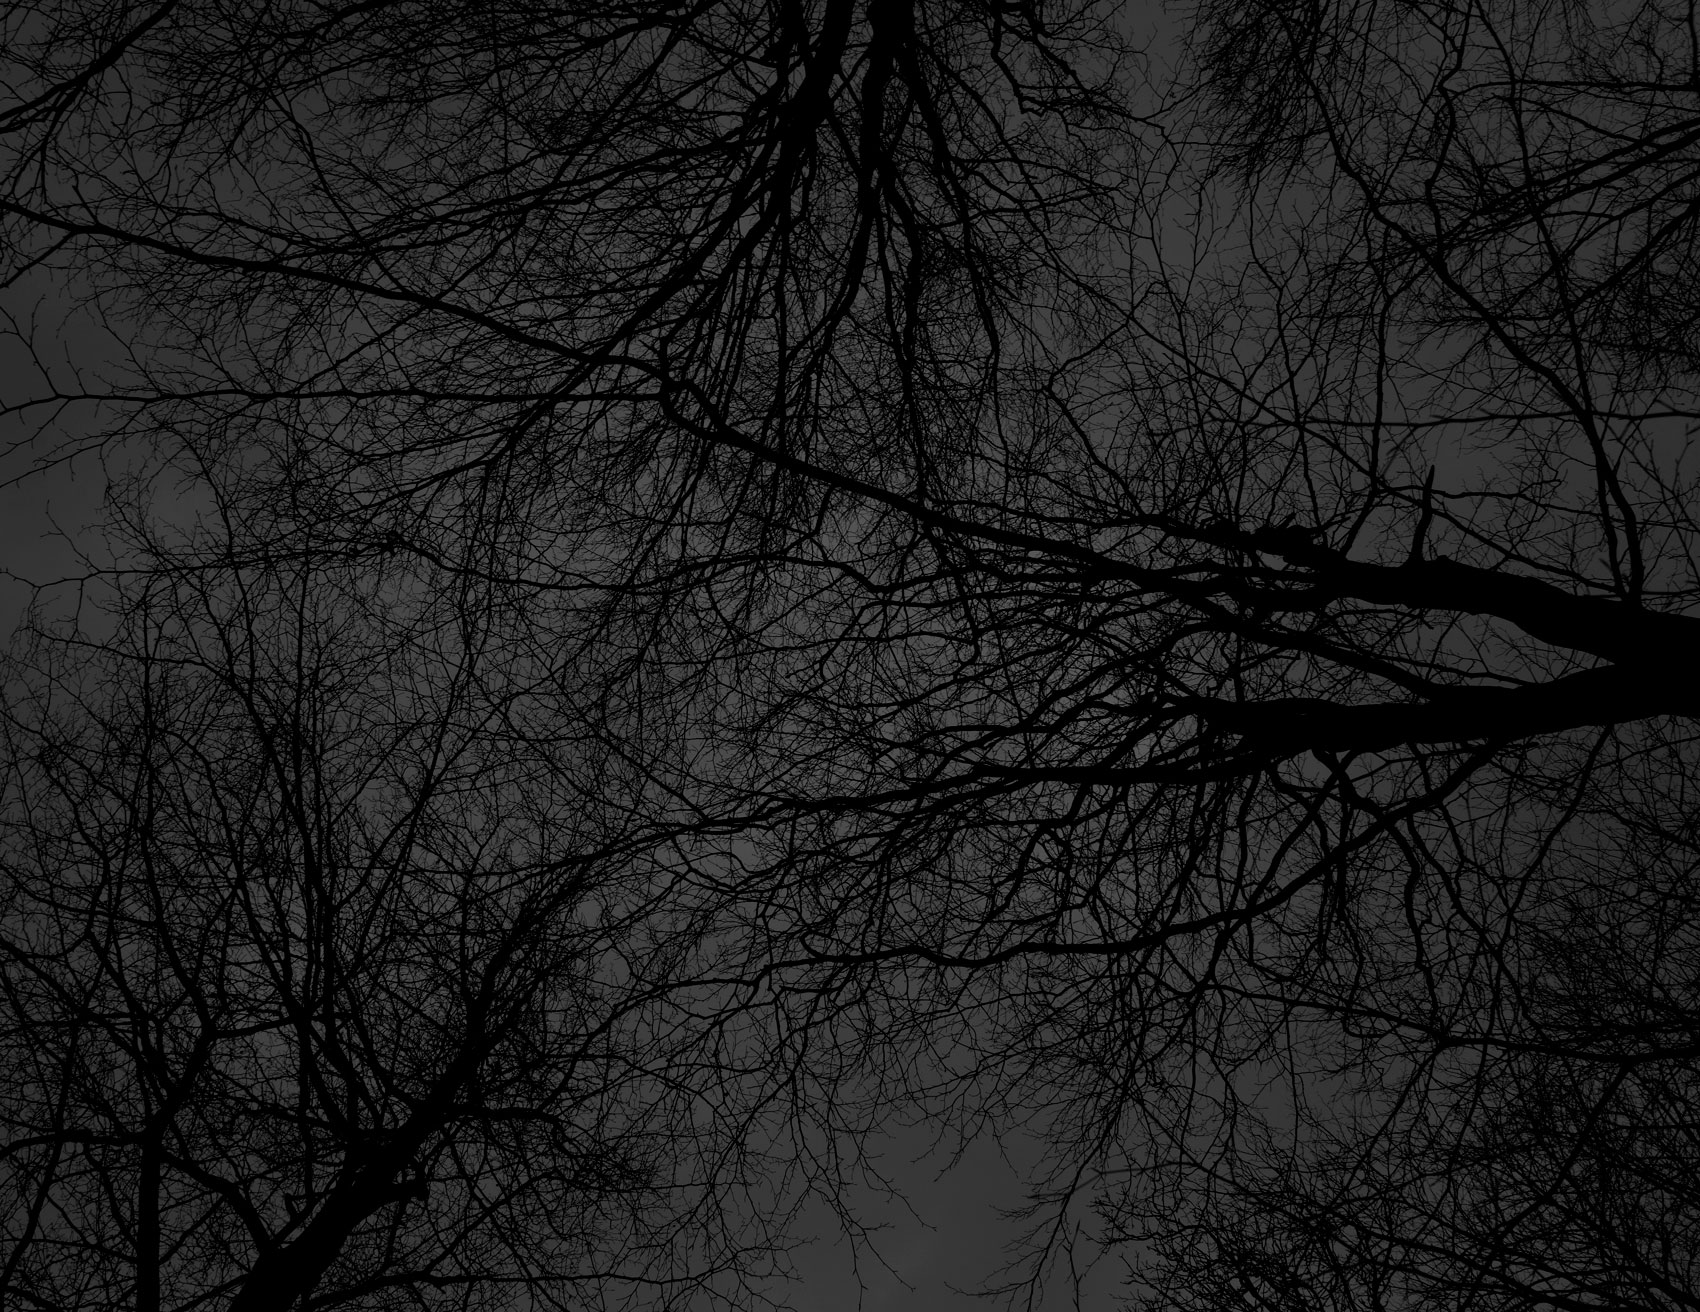 Dark black bare trees 01